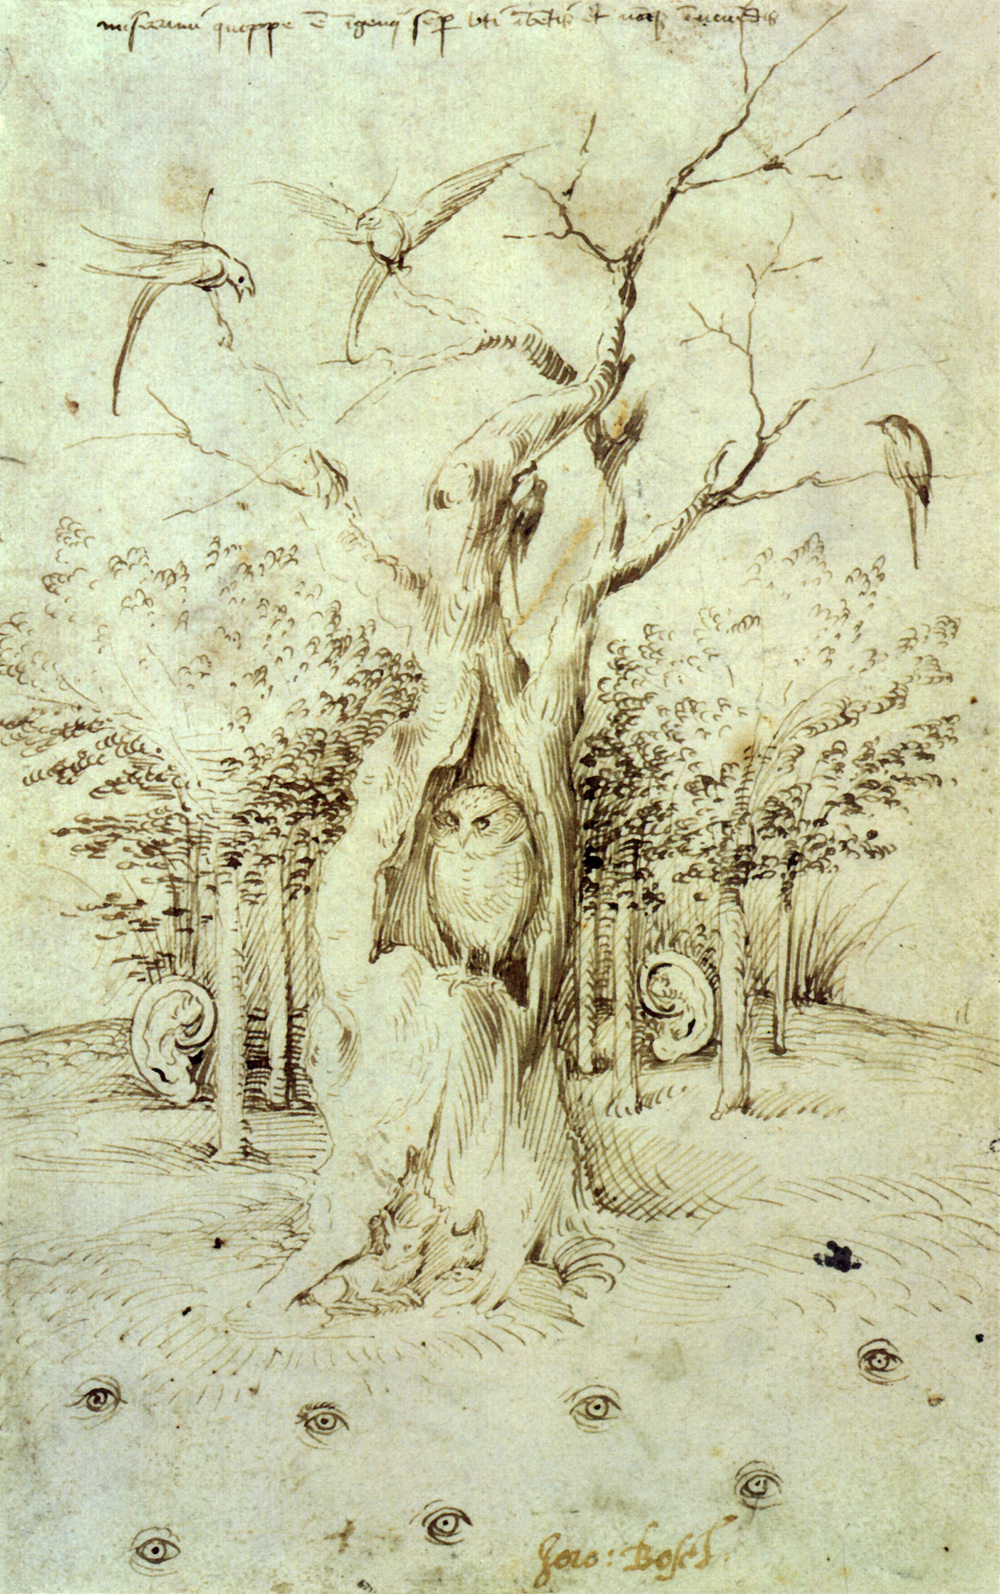 Heironymus Bosch - The Trees Have Ears and the Fields Have Eyes